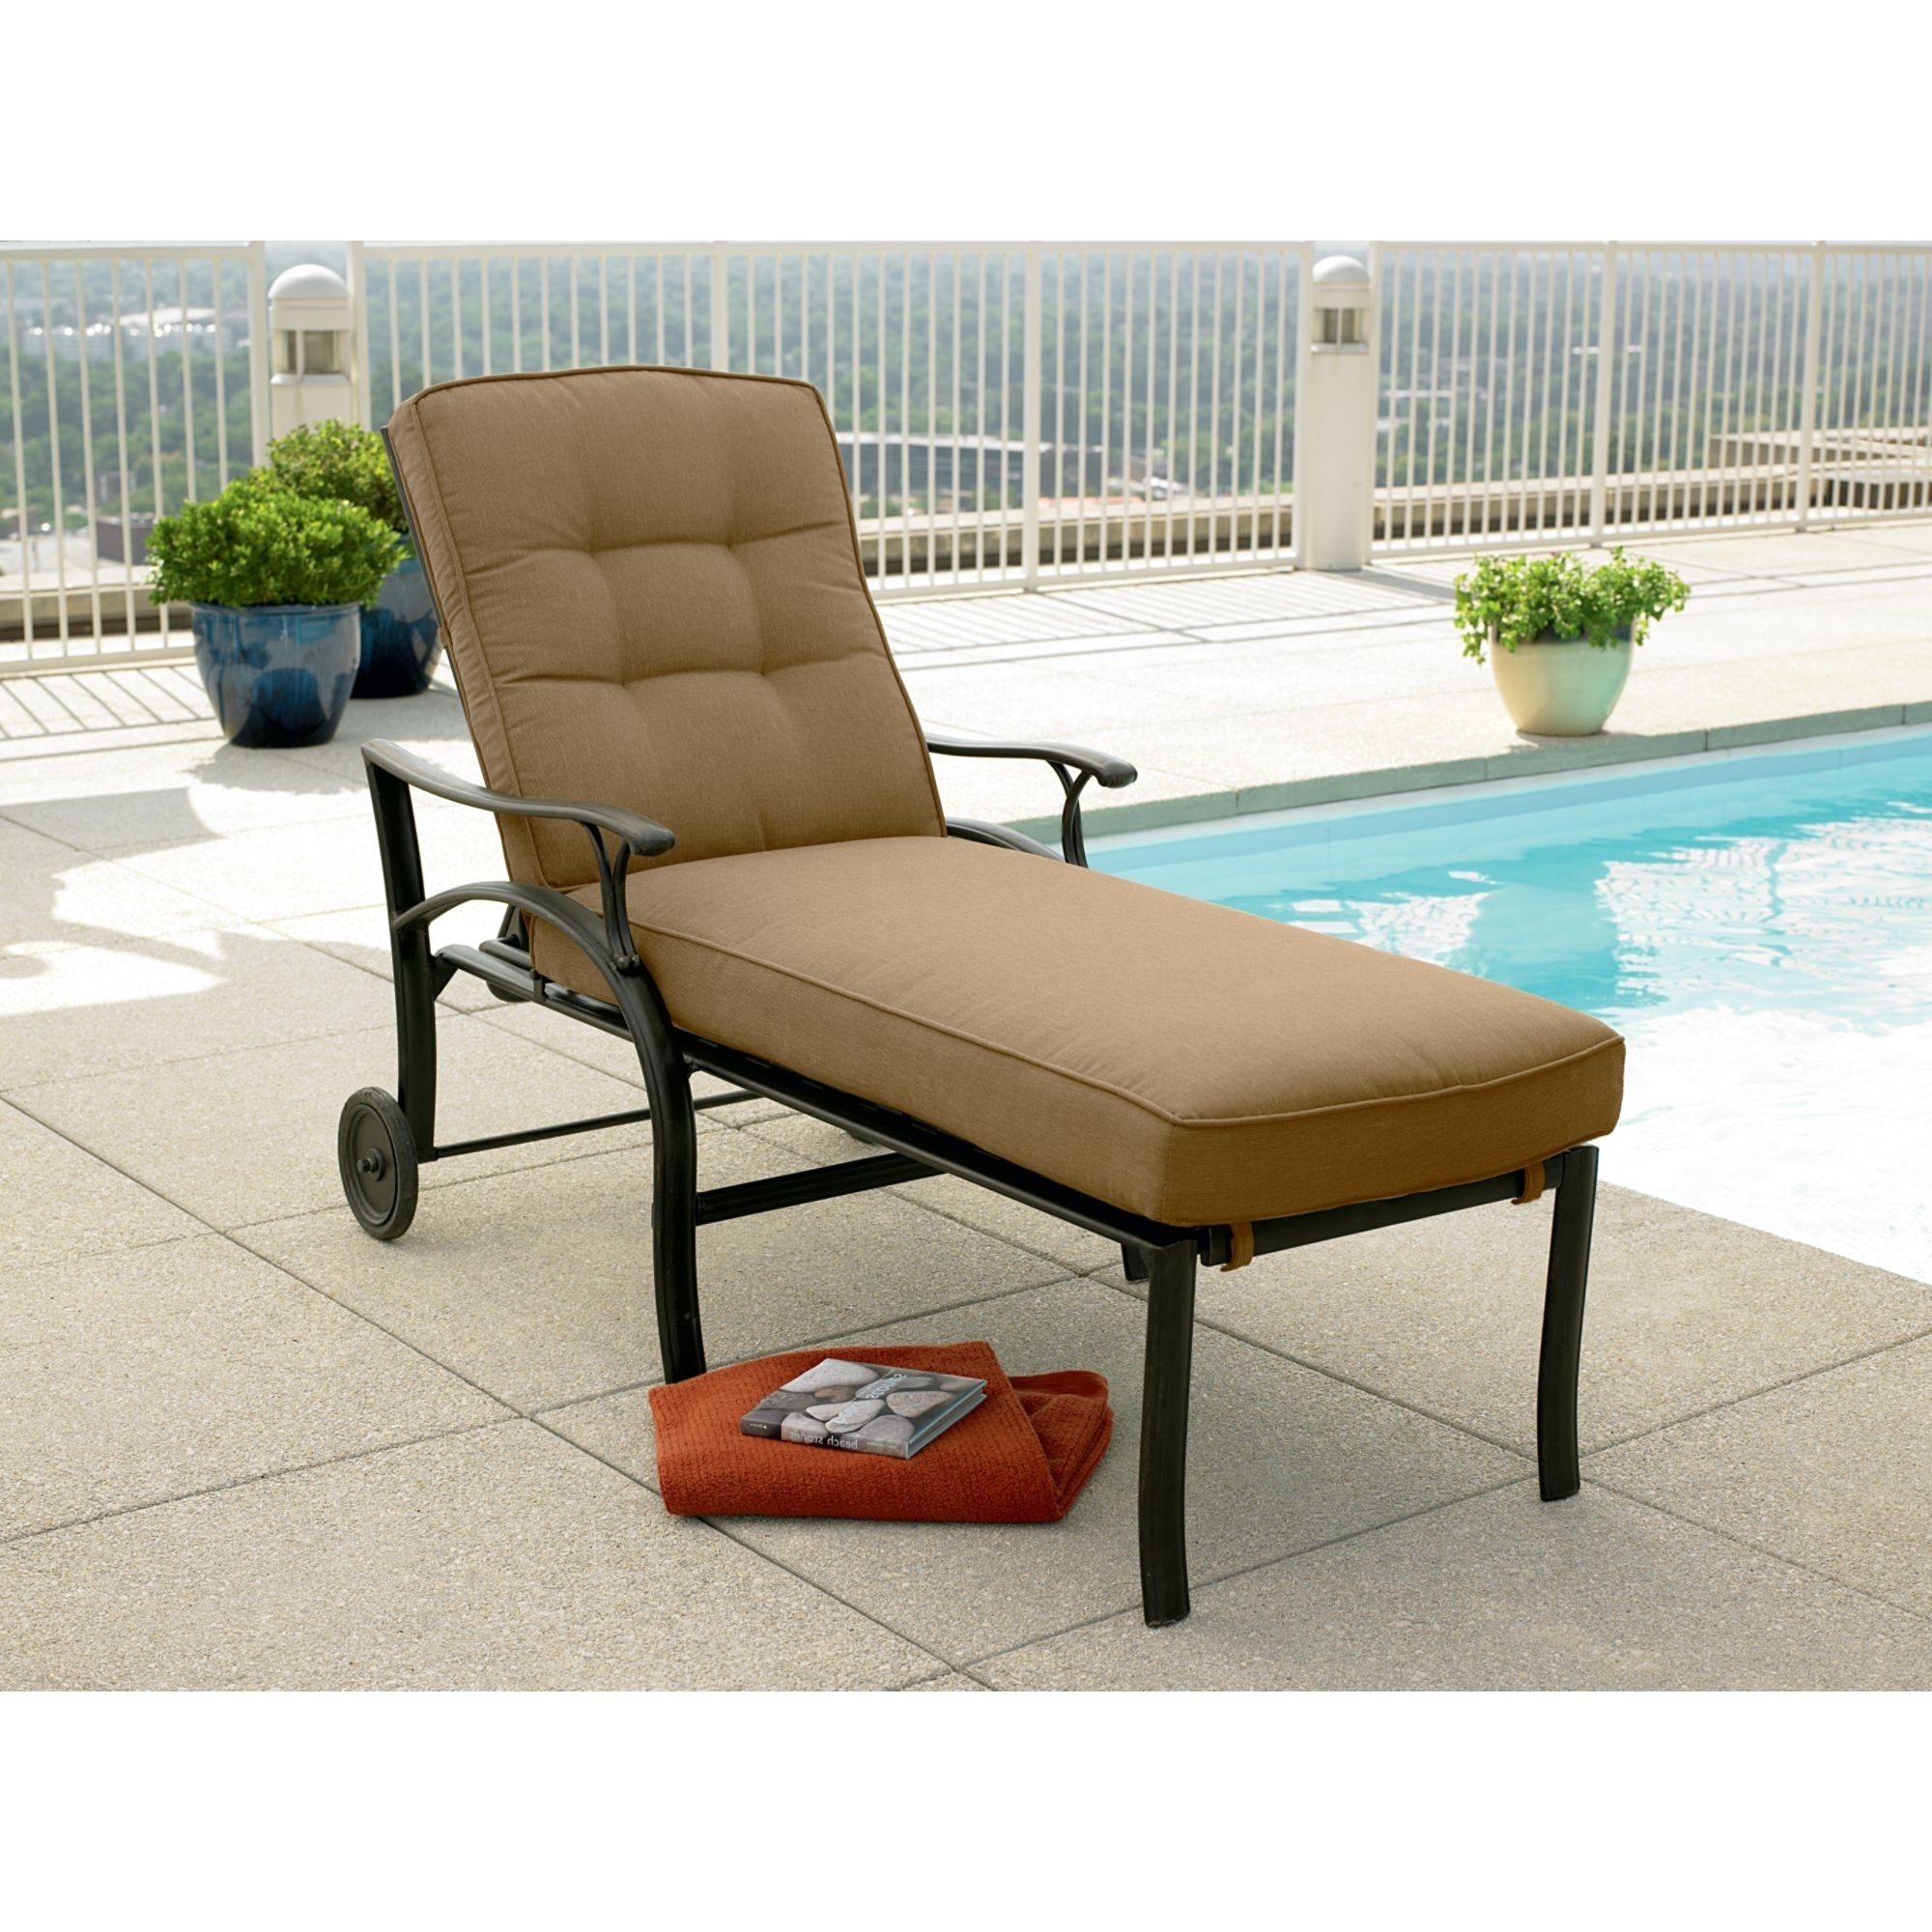 Lazy Boy Chaise Lounges With Regard To Trendy Furniture: Patio Chaise Lounge Chairs Walmart Lounges With Pool (View 11 of 15)